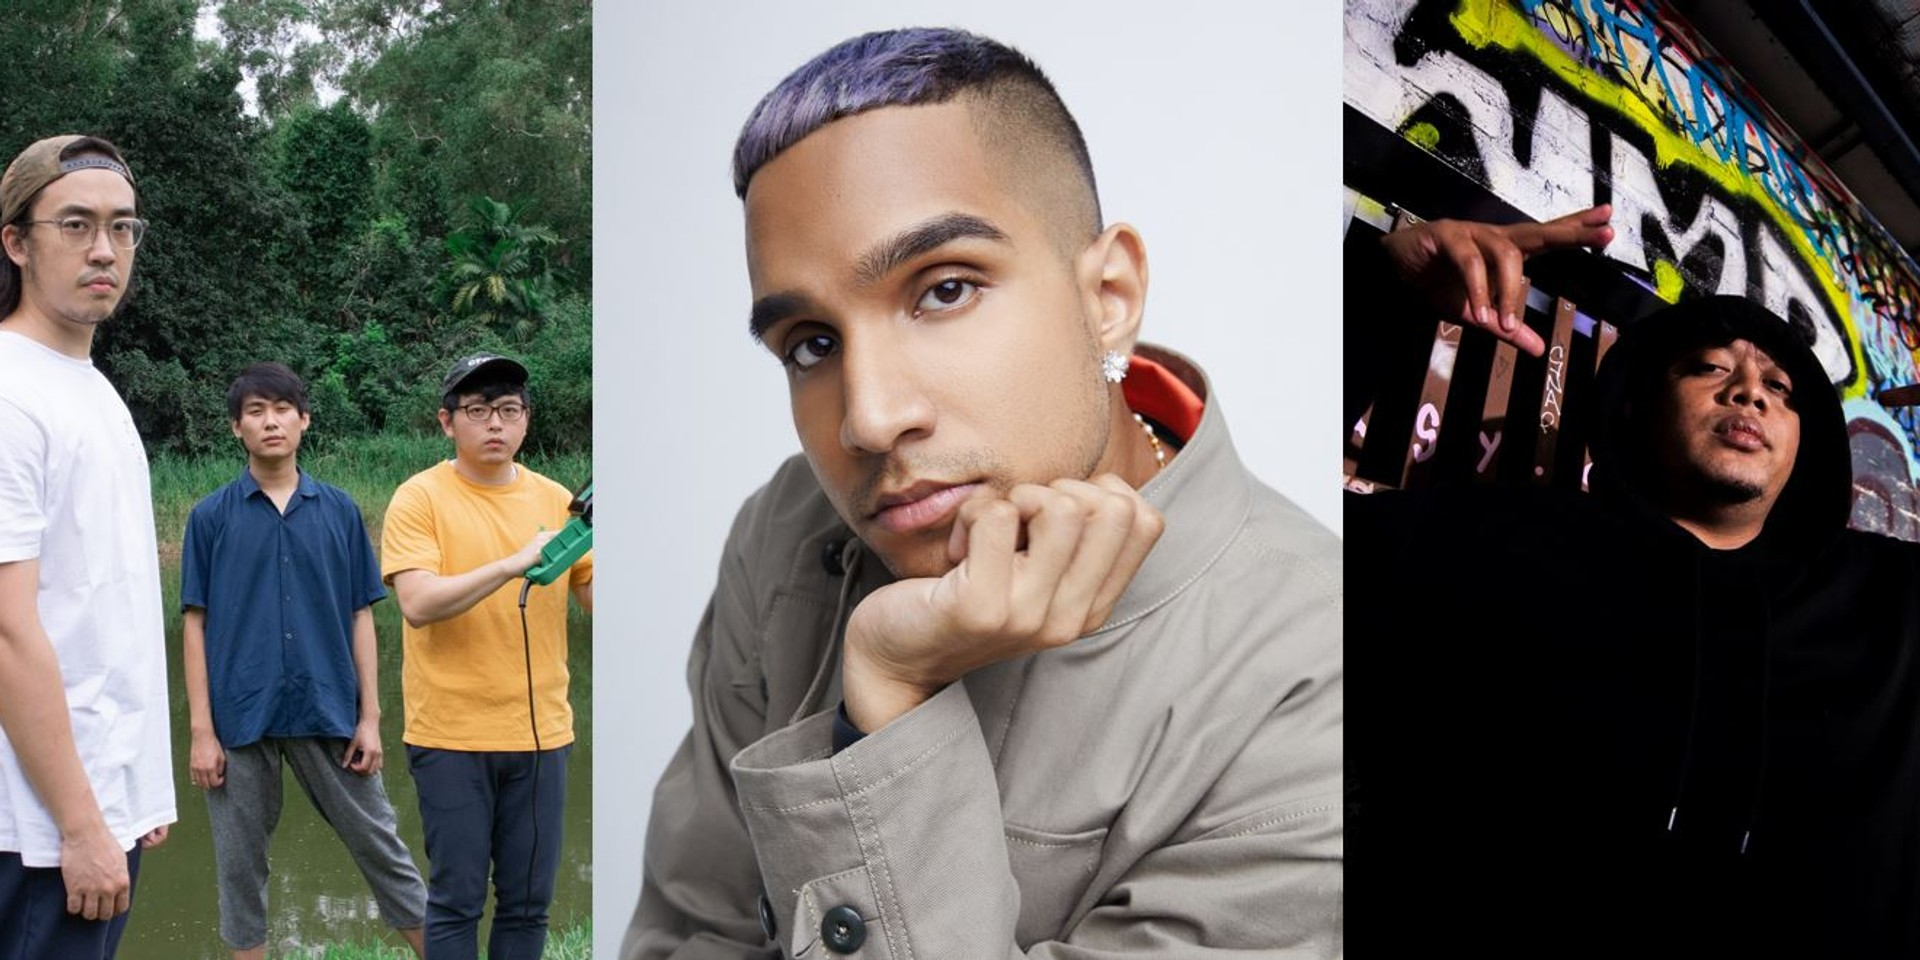 Somerset Battle Grounds to feature live Skateboarding Competition and performances byYung Raja, Akeem Jahat, Forests, and more